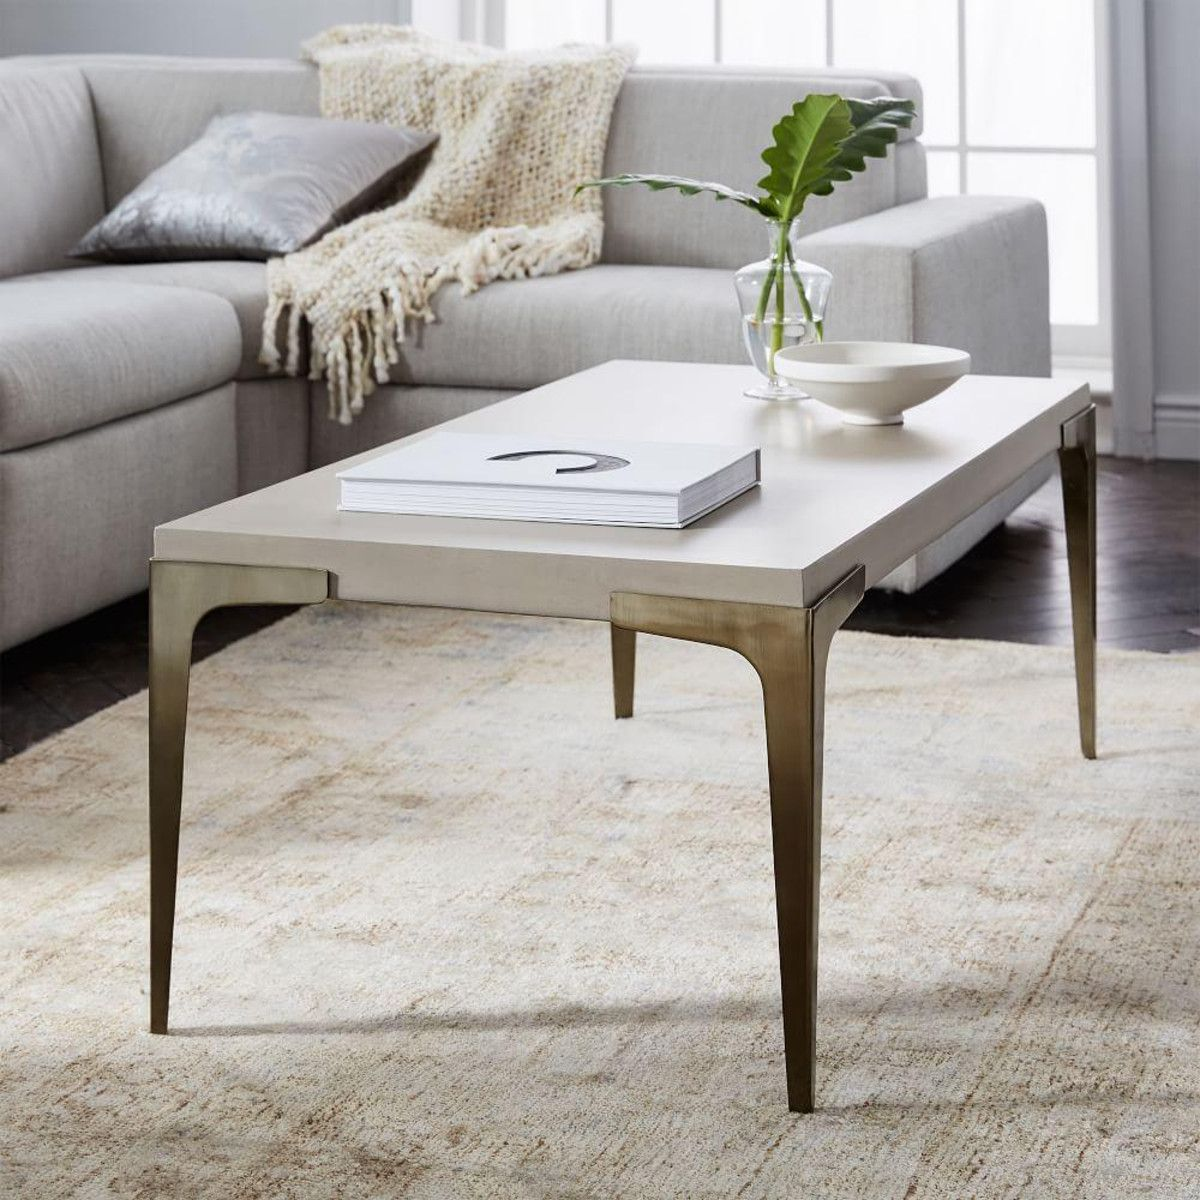 Brass Concrete Coffee Table Concrete coffee table Concrete and